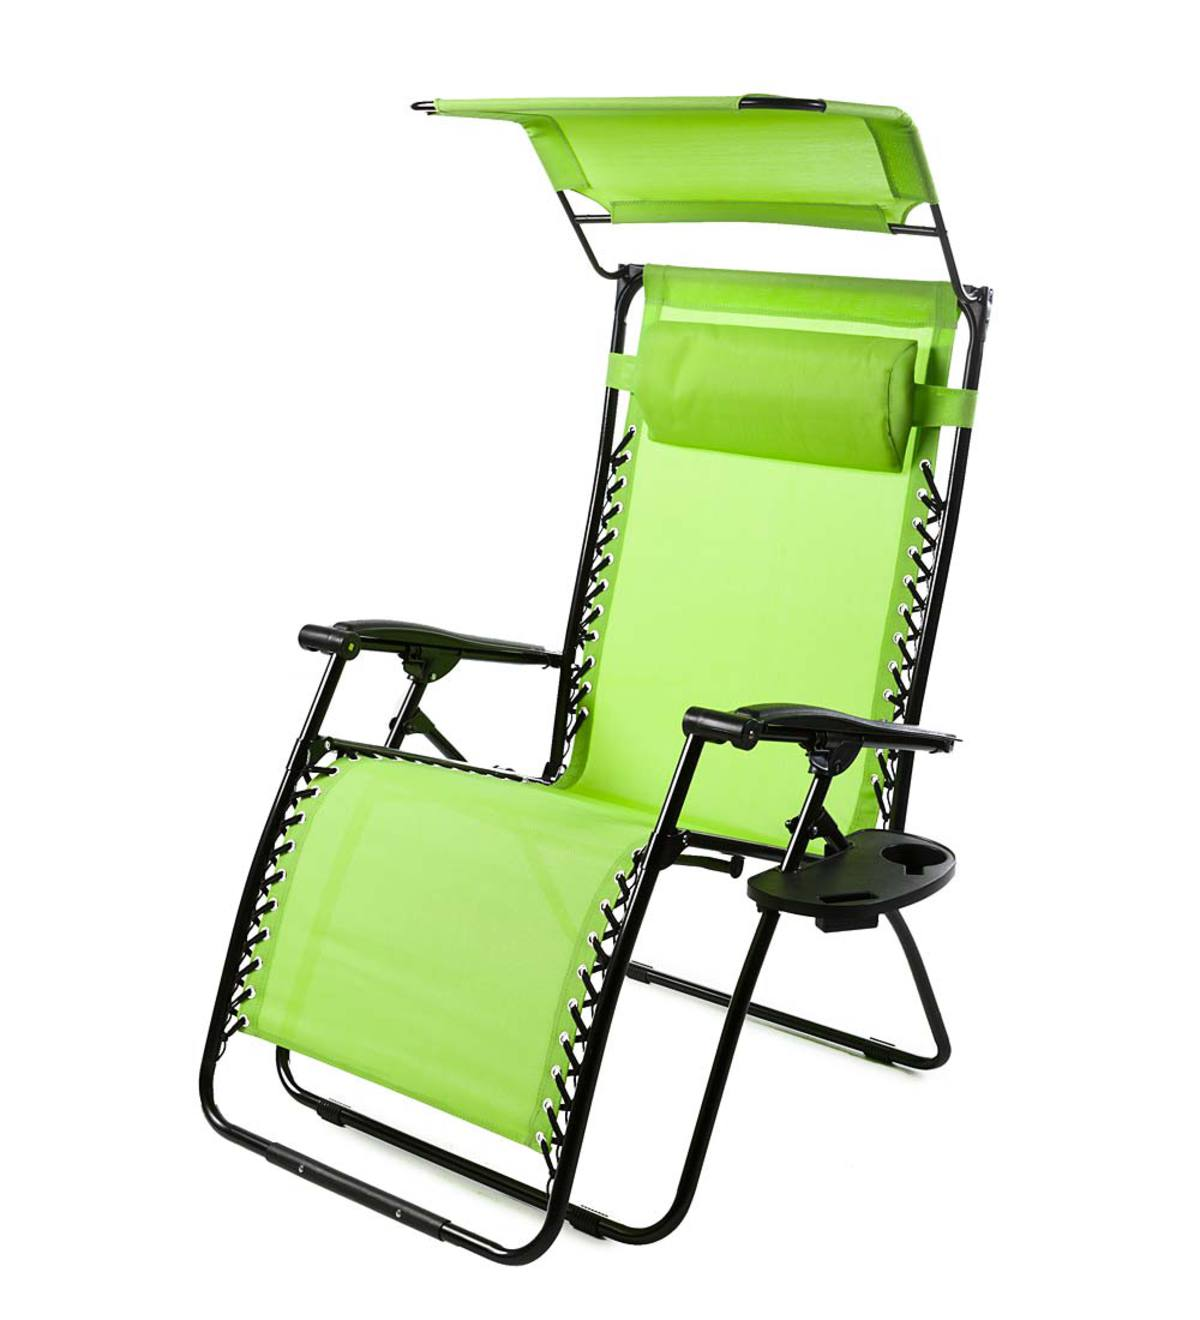 Deluxe Zero Gravity Chair With Awning, Table And Drink Holder - Green